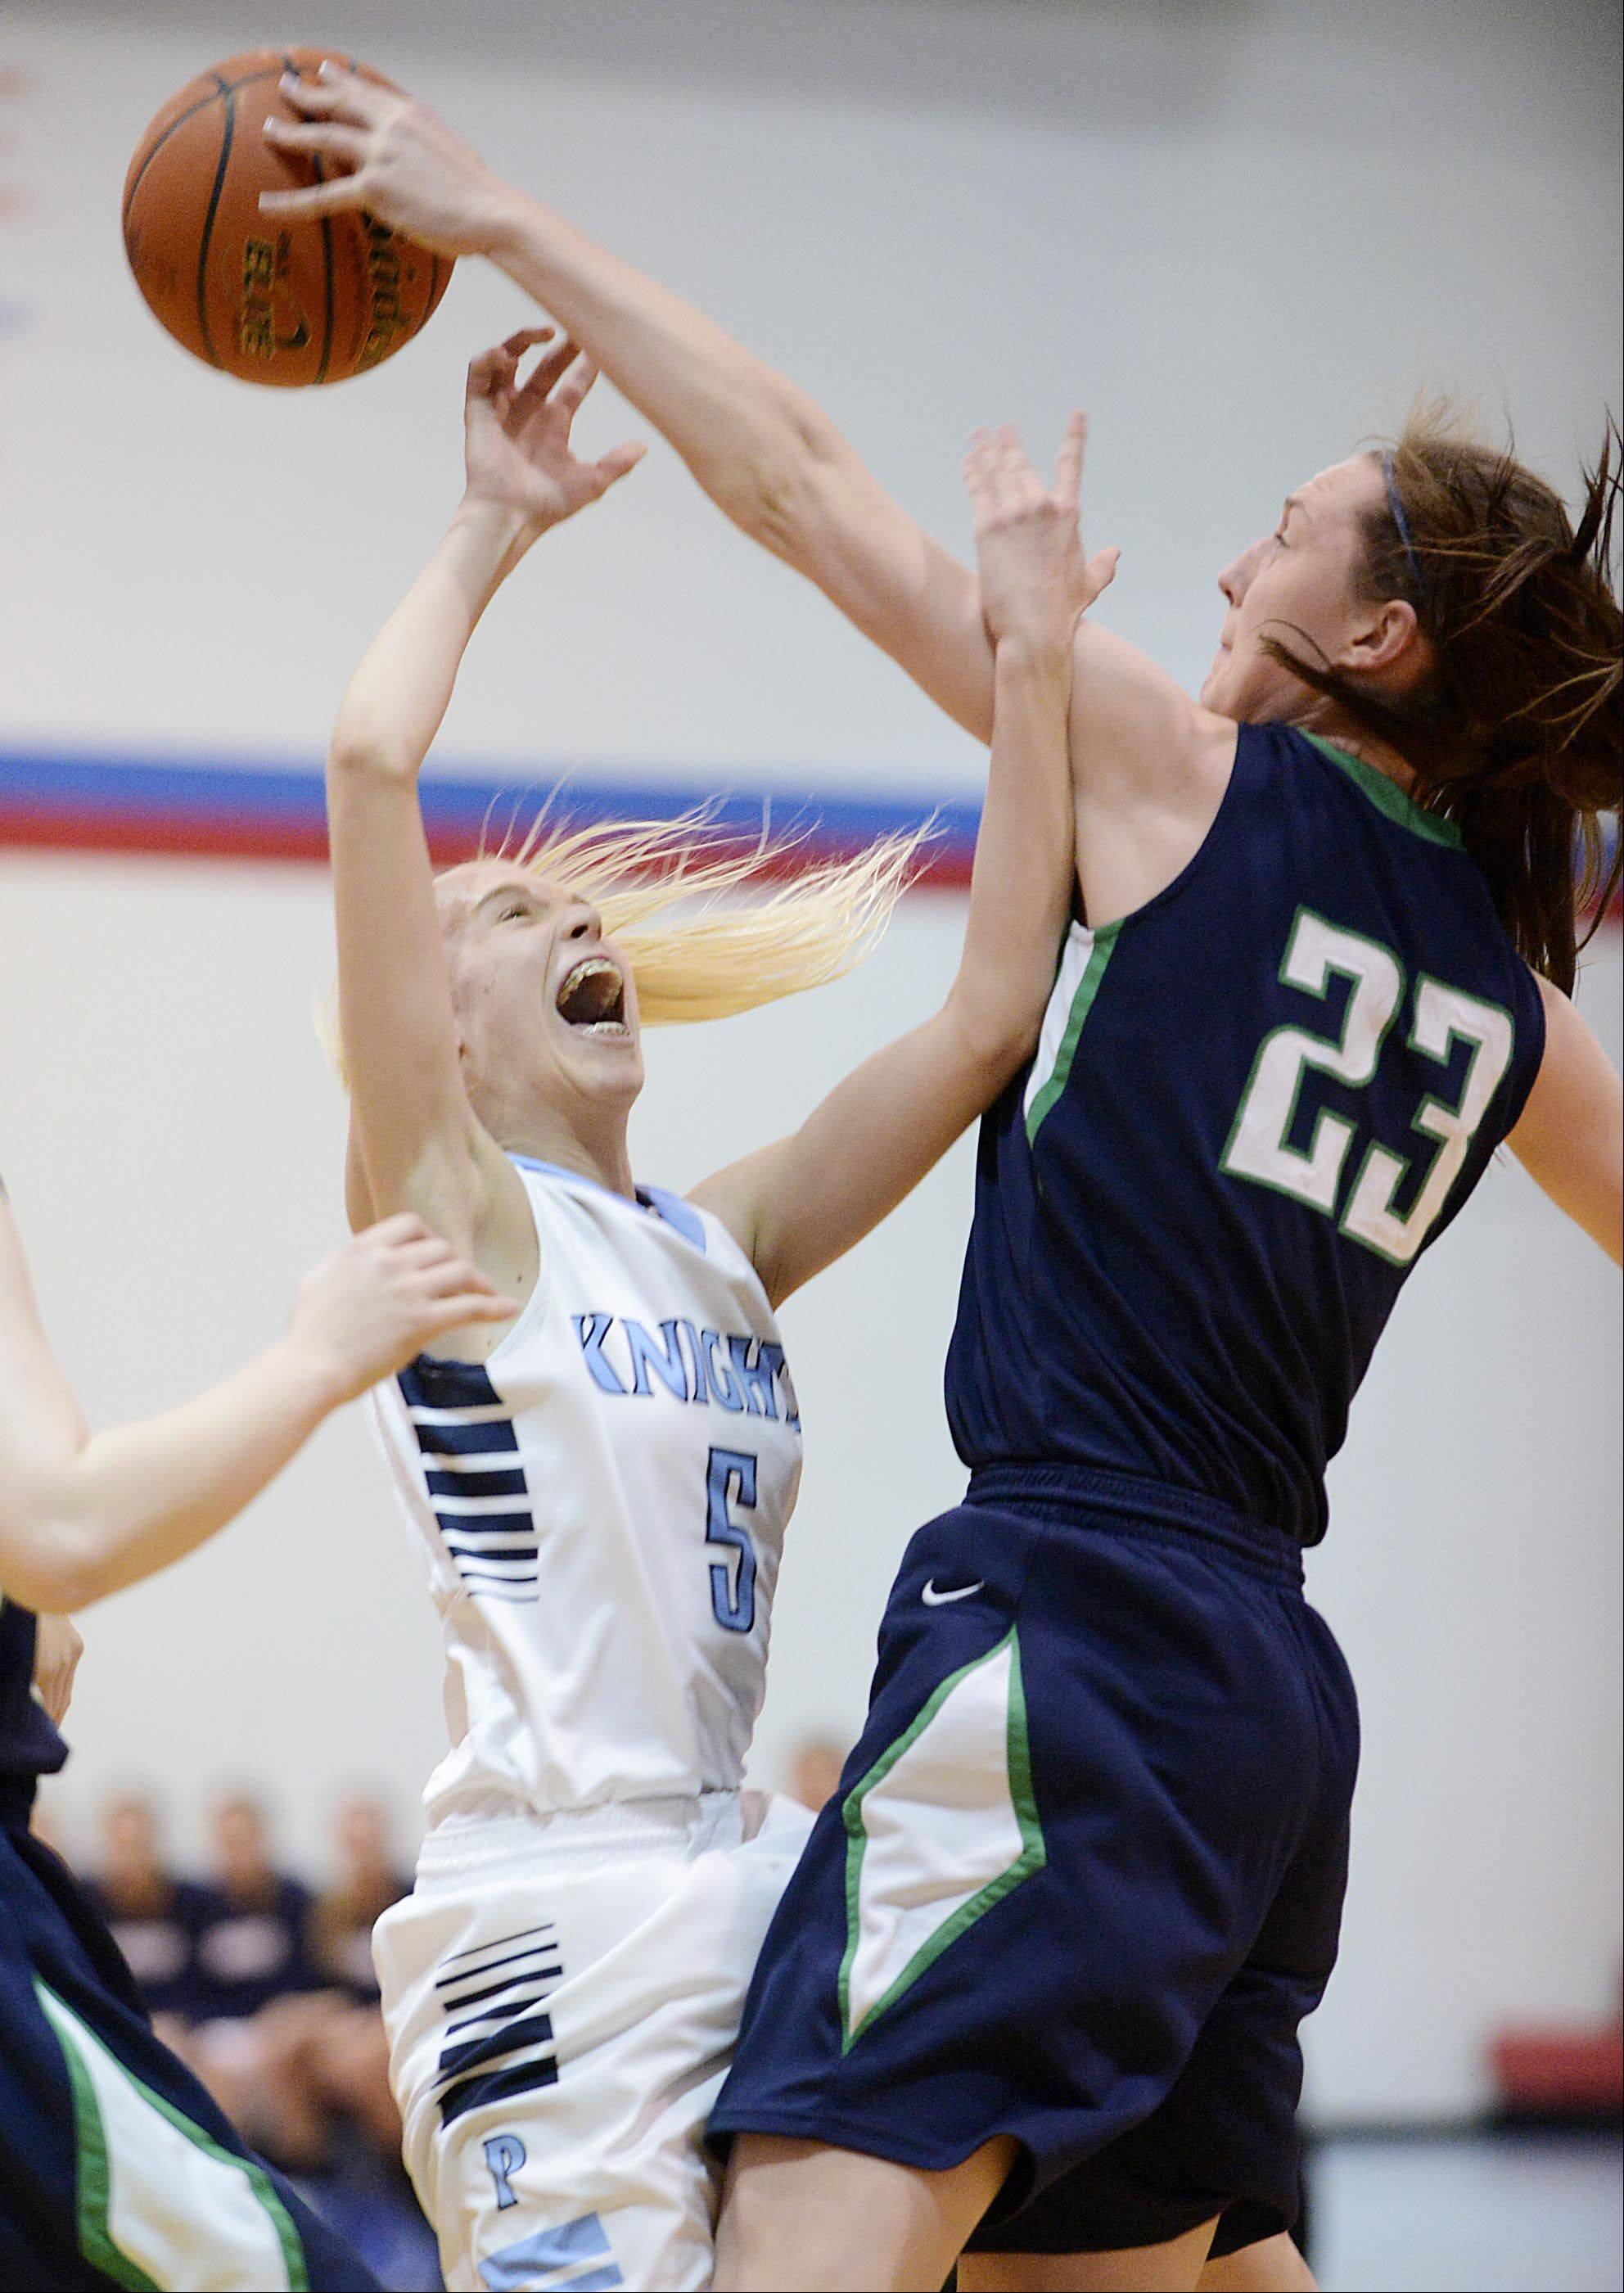 Prospect's Haley Will has her shot blocked by New Trier's Jeanne Boehm.